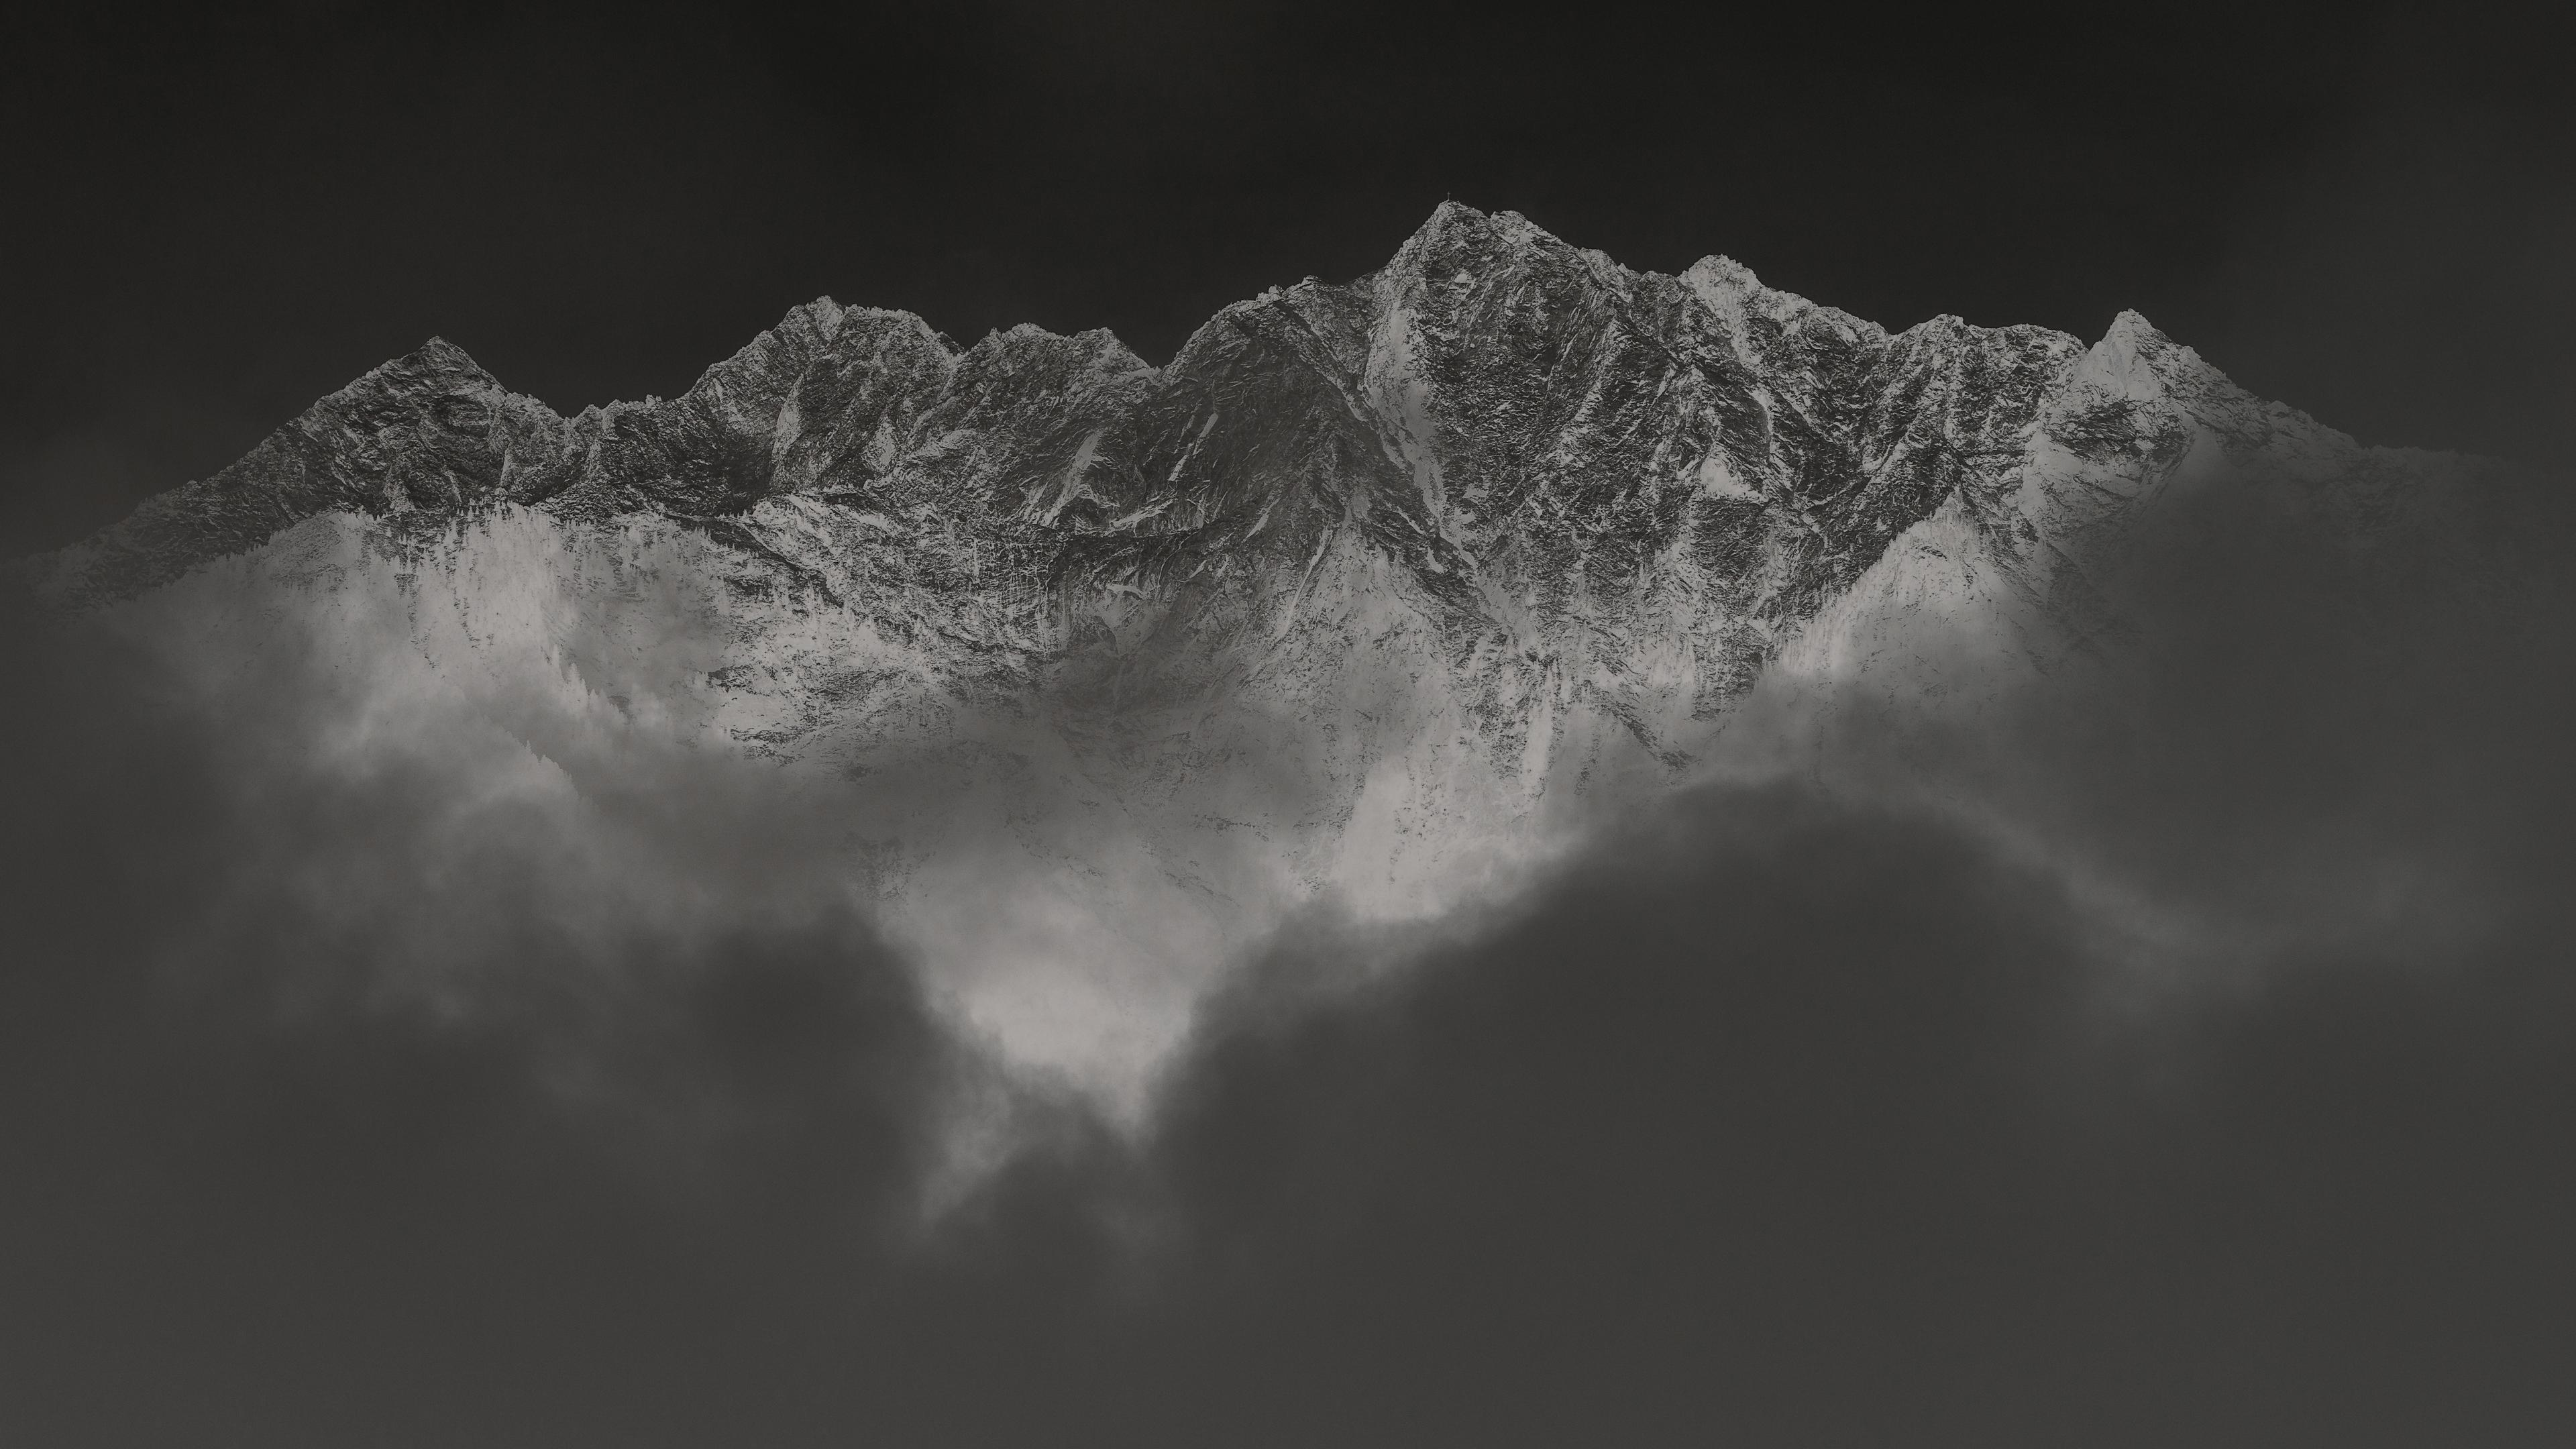 Inverted Black White Mountains 4k Wallpaper